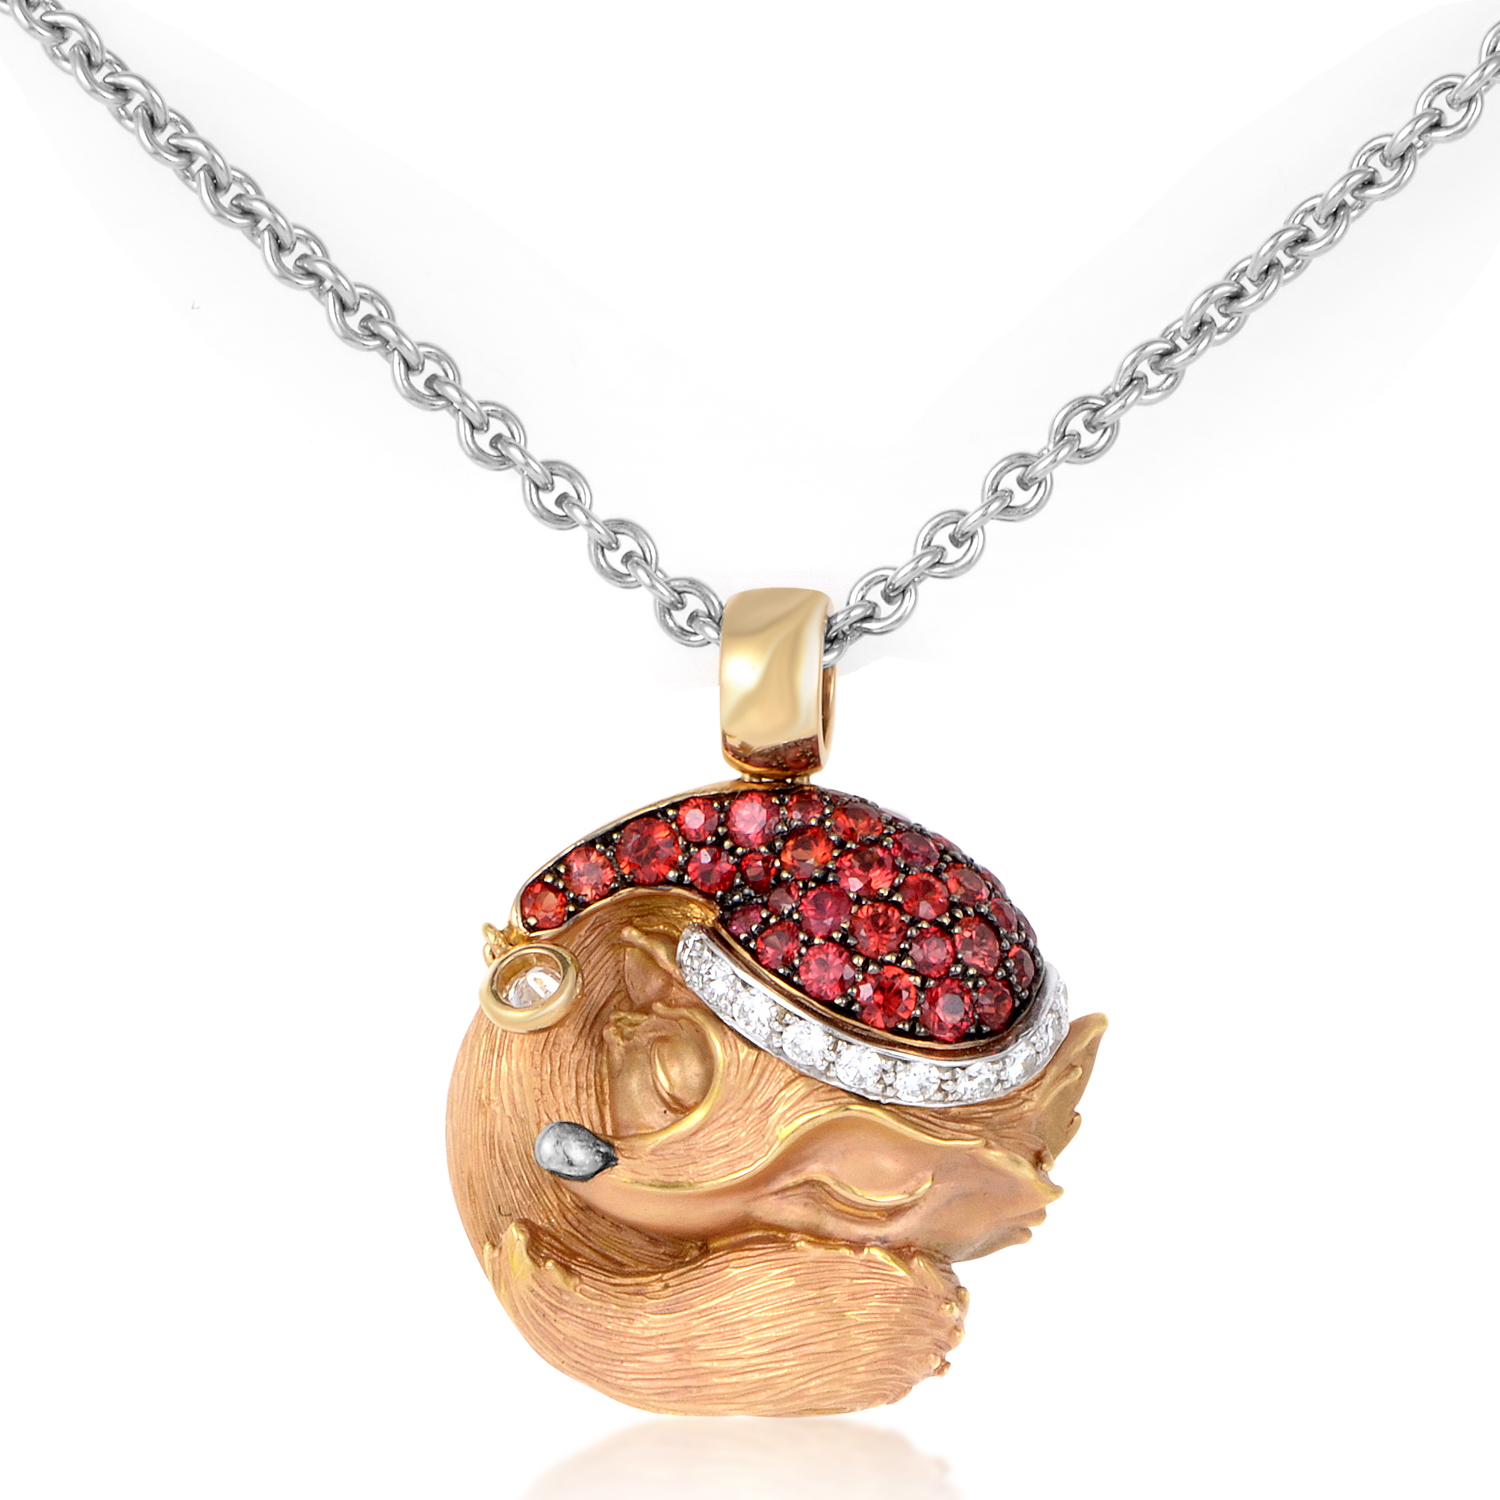 Tender Women's 18K Rose Gold Diamond & Gem Sleeping Fox Pendant Necklace